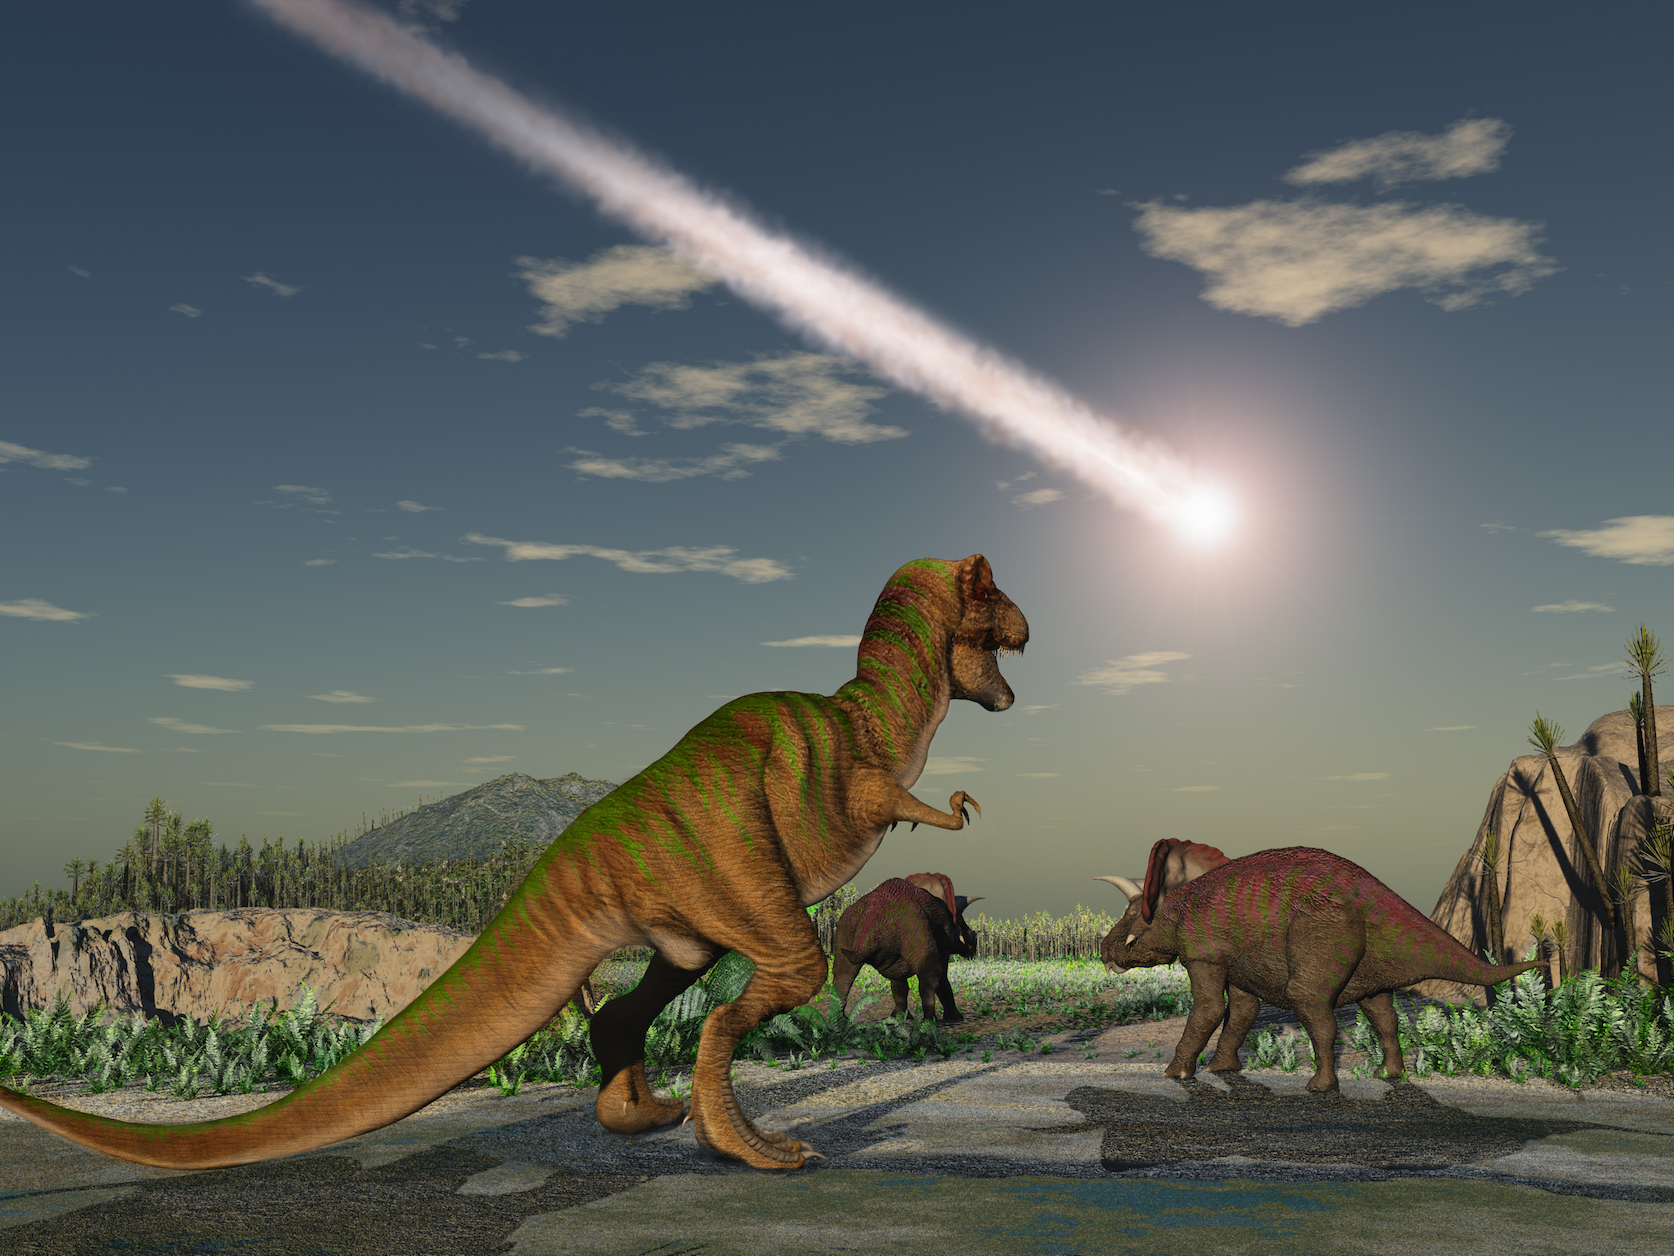 The extinction event that killed the dinosaurs could have also caused over a year and a half of darkness on Earth.